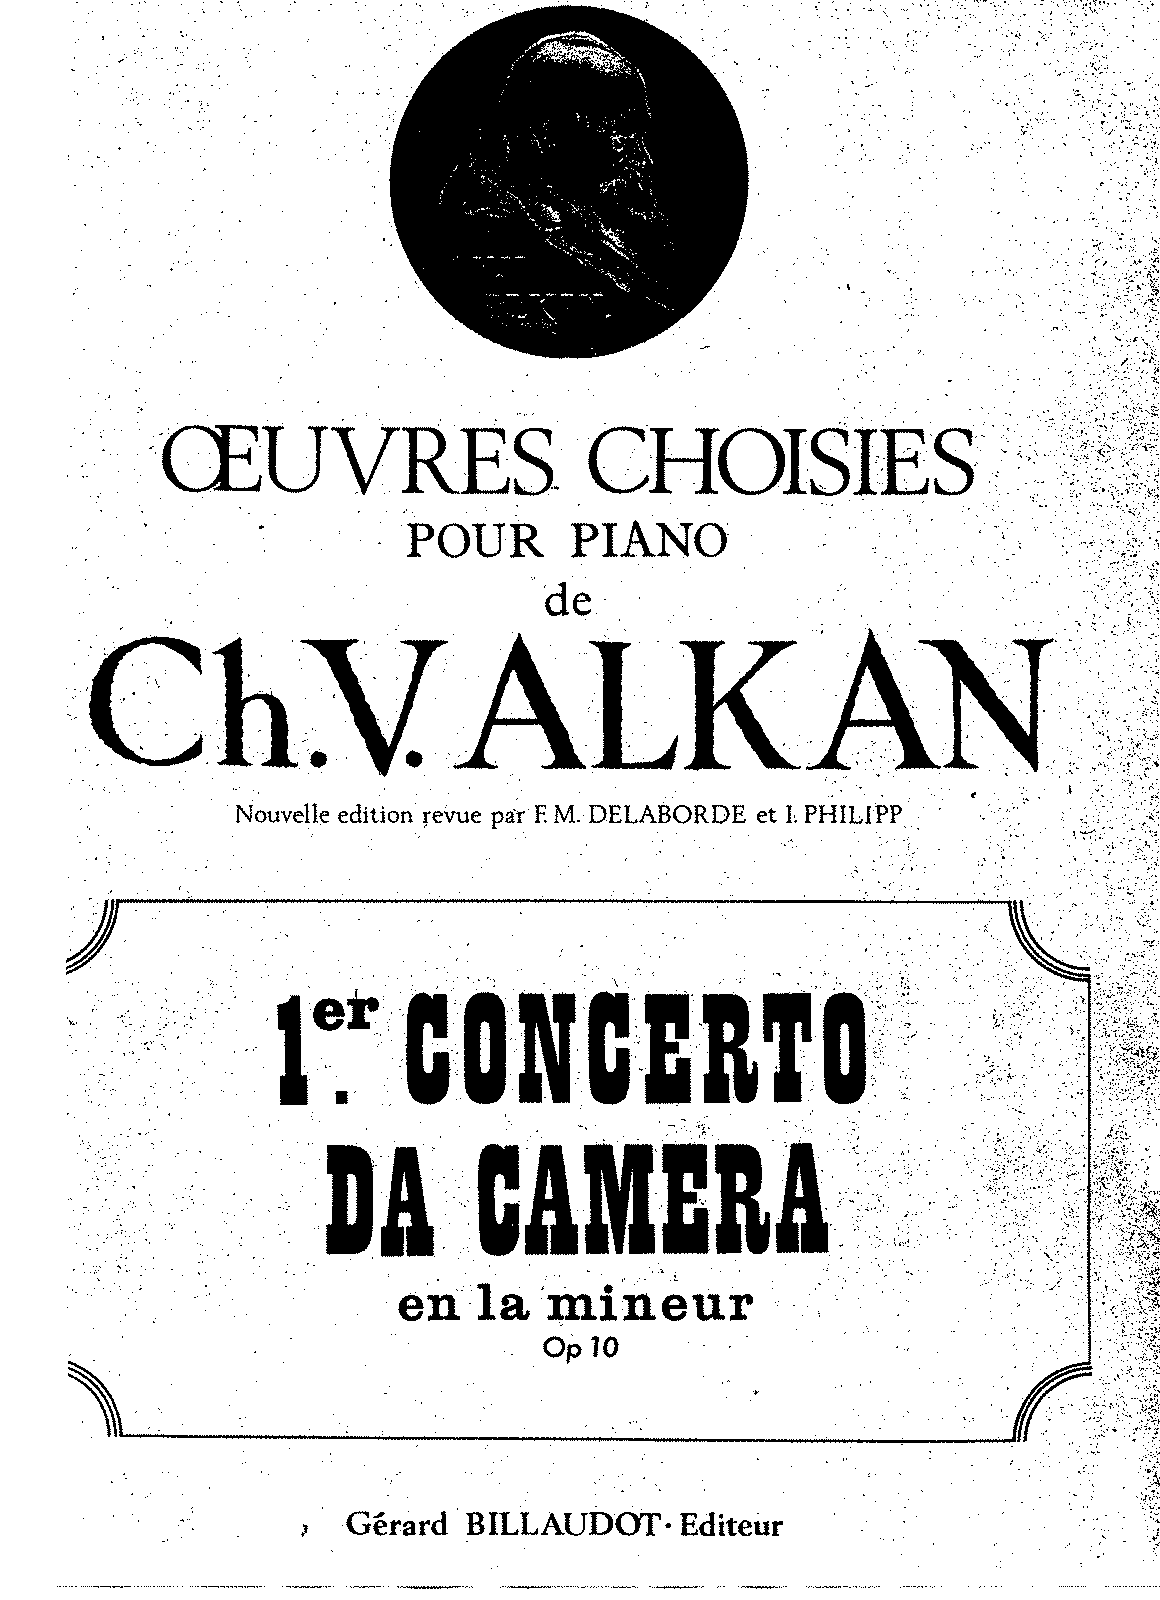 Alkan-Premier concerto da camera (fixed).pdf